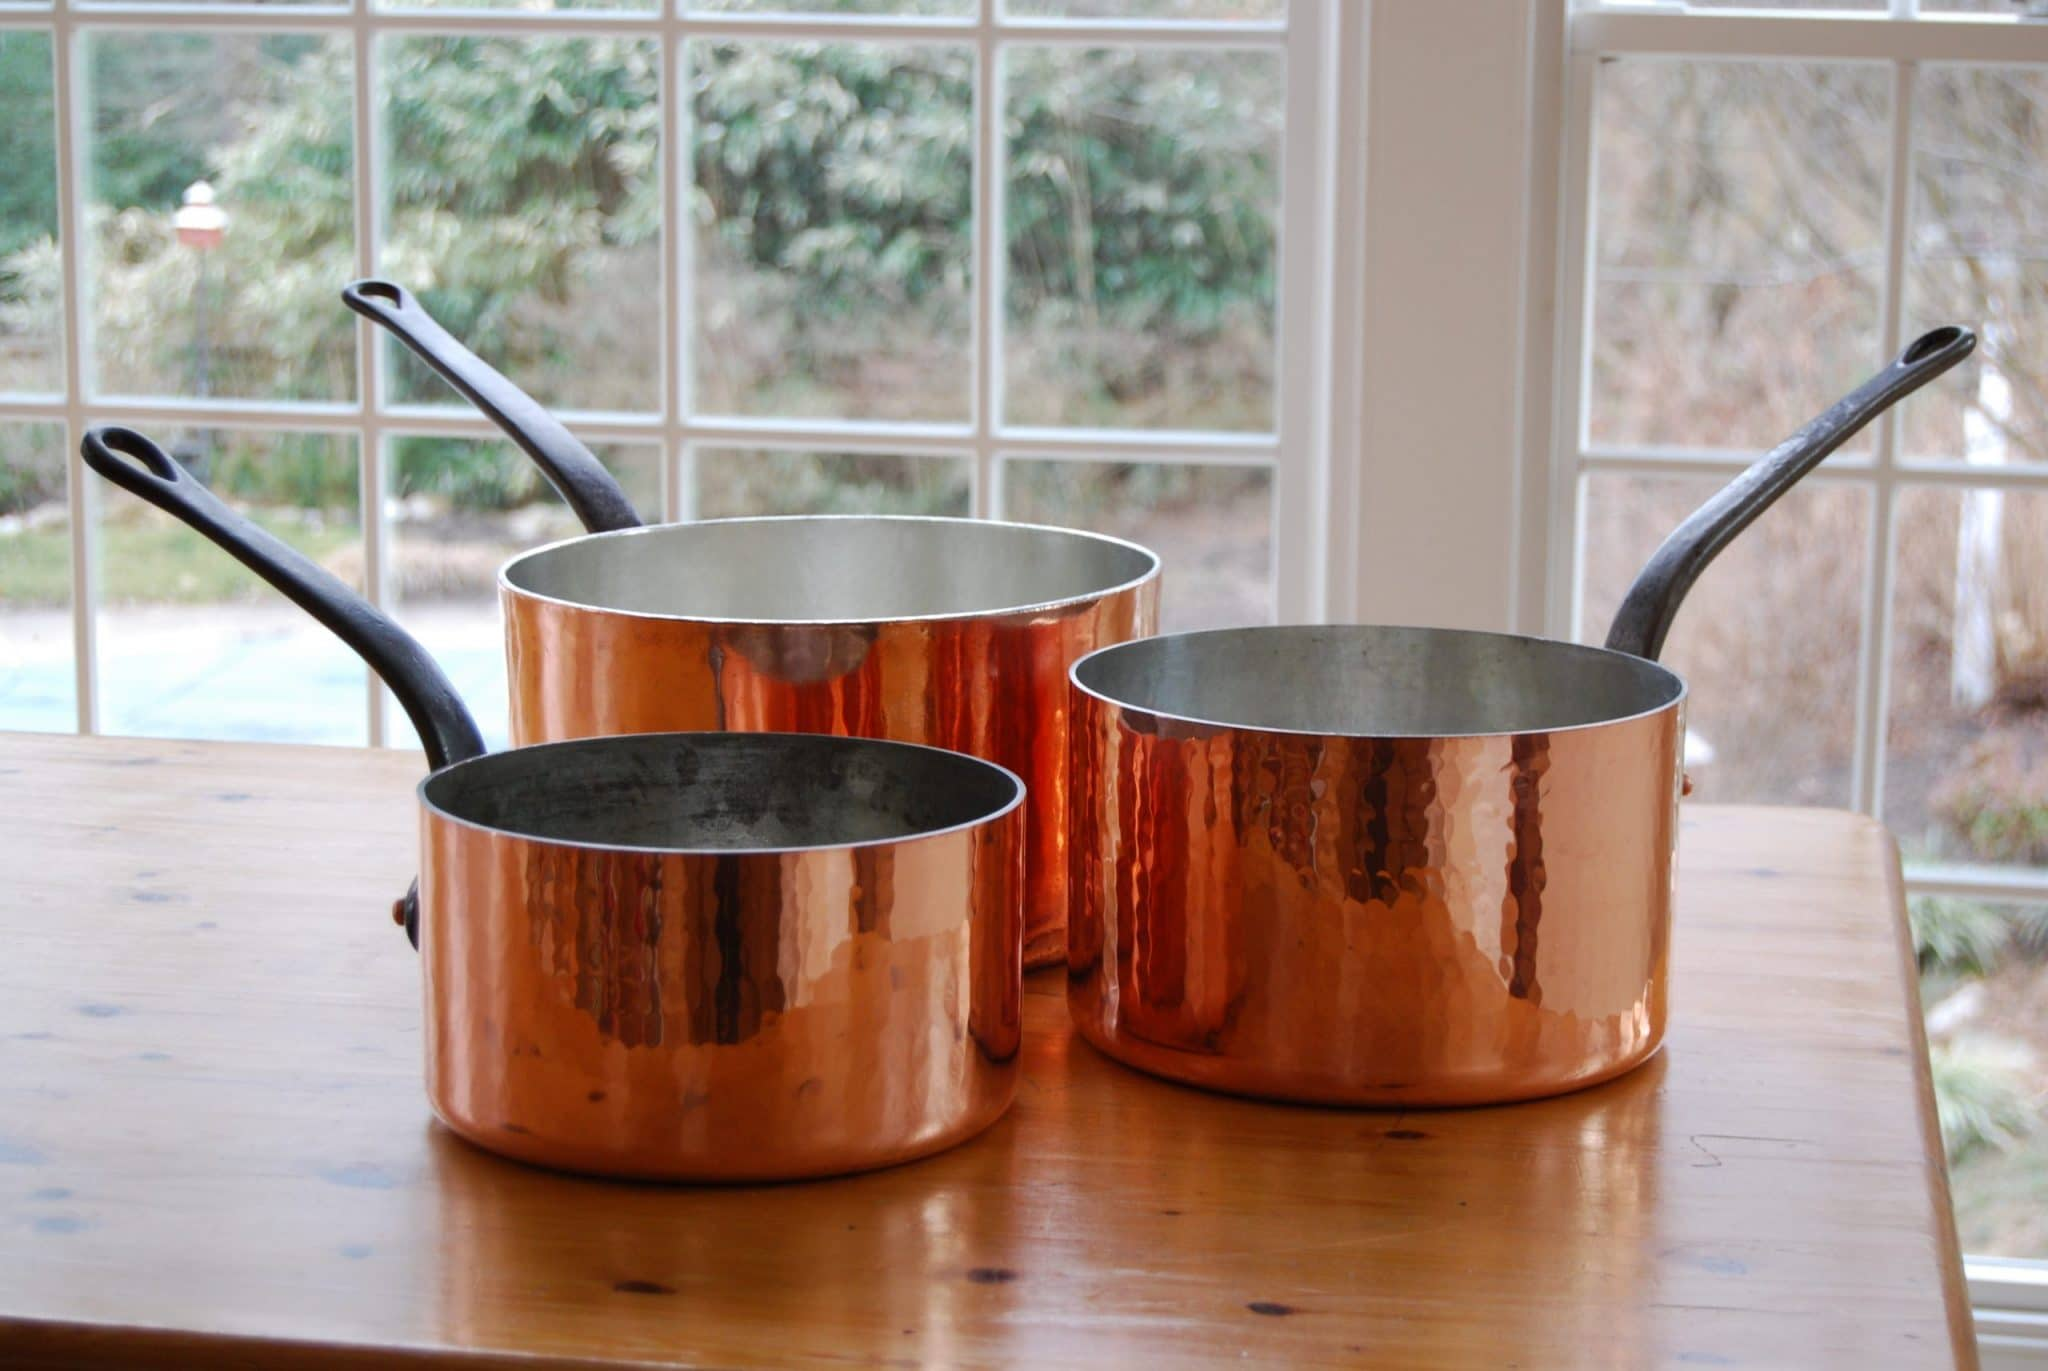 22cm, 24cm, and 28cm Dehillerin and Mauviel saucepans